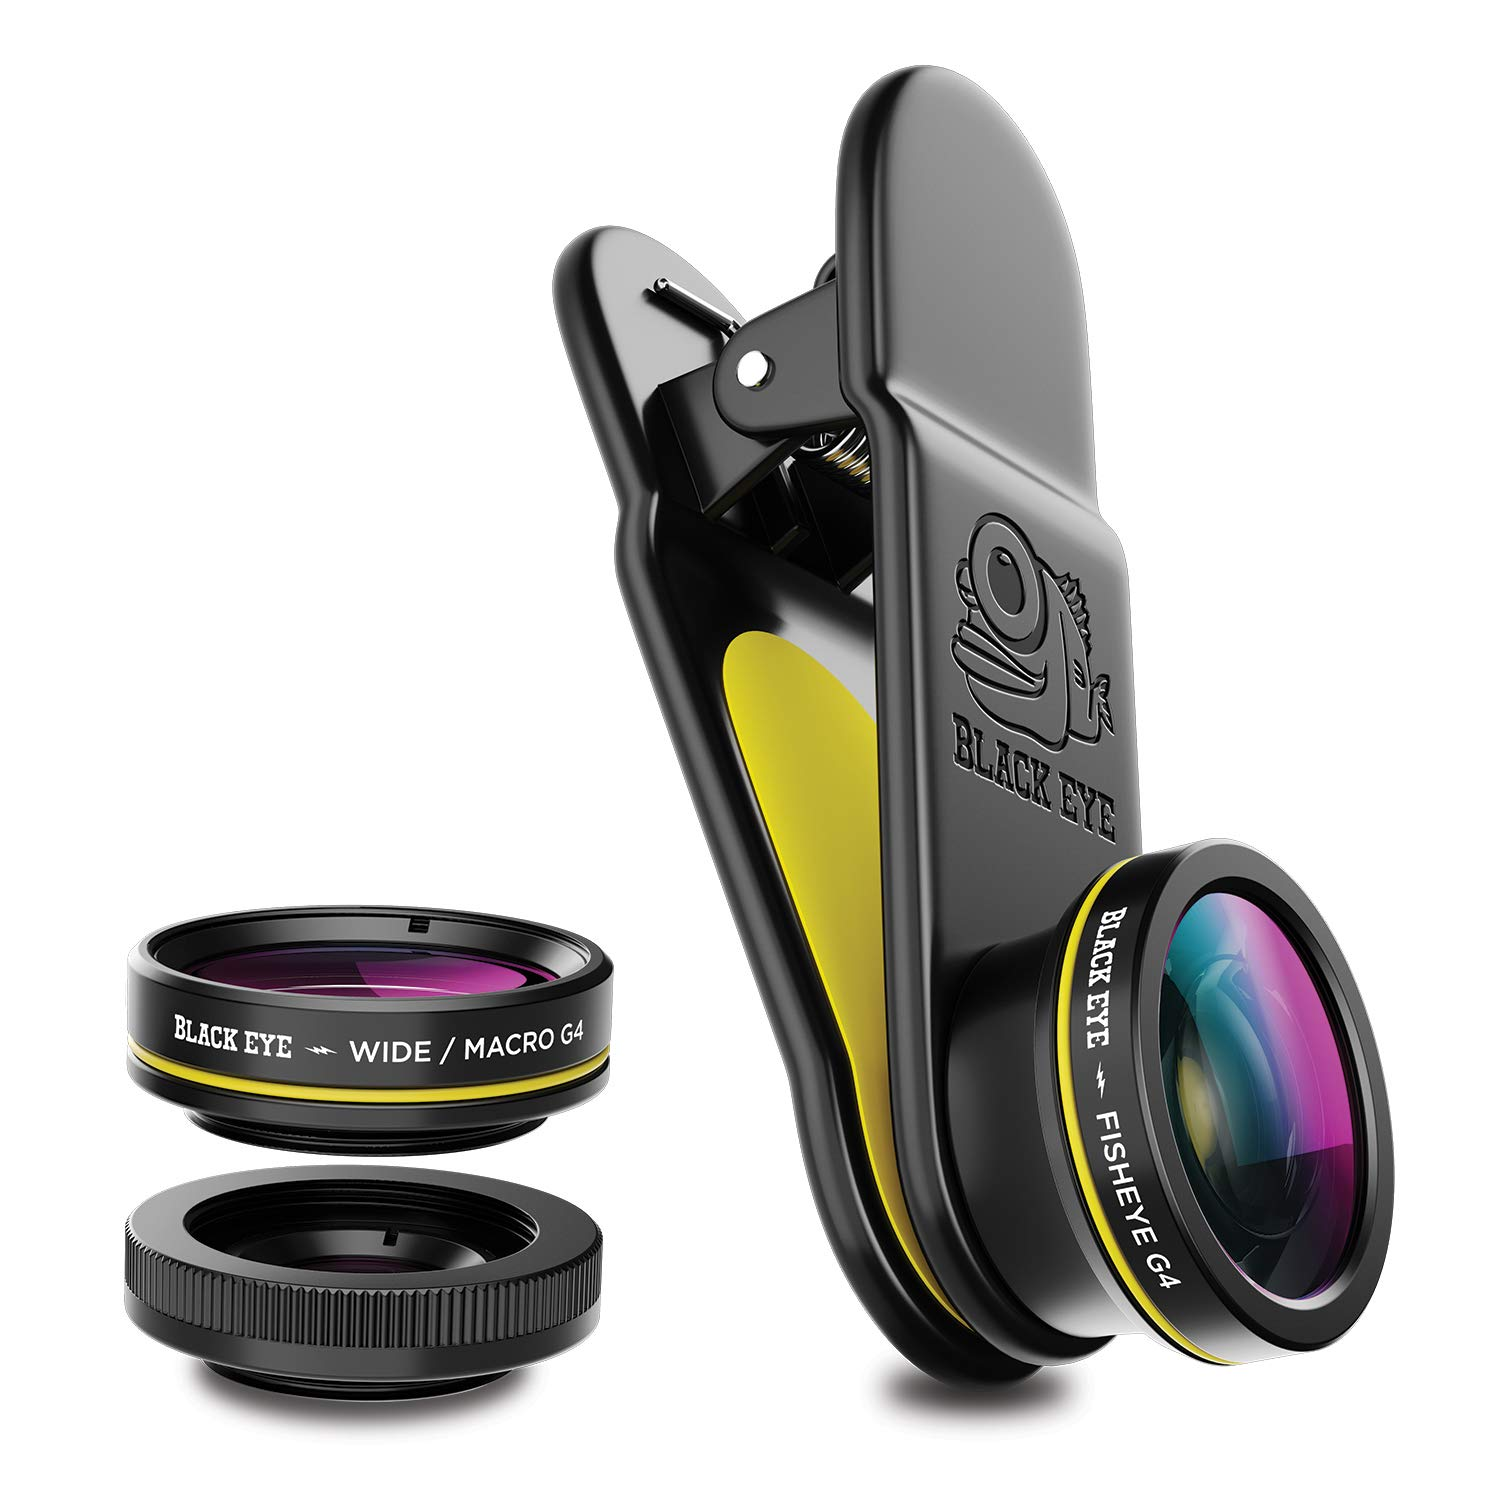 Phone Lenses by Black Eye    Clip-on Lens (3 Lenses) Compatible with iPhone, iPad, Samsung Galaxy, and All Camera Phone Models by BLACK EYE